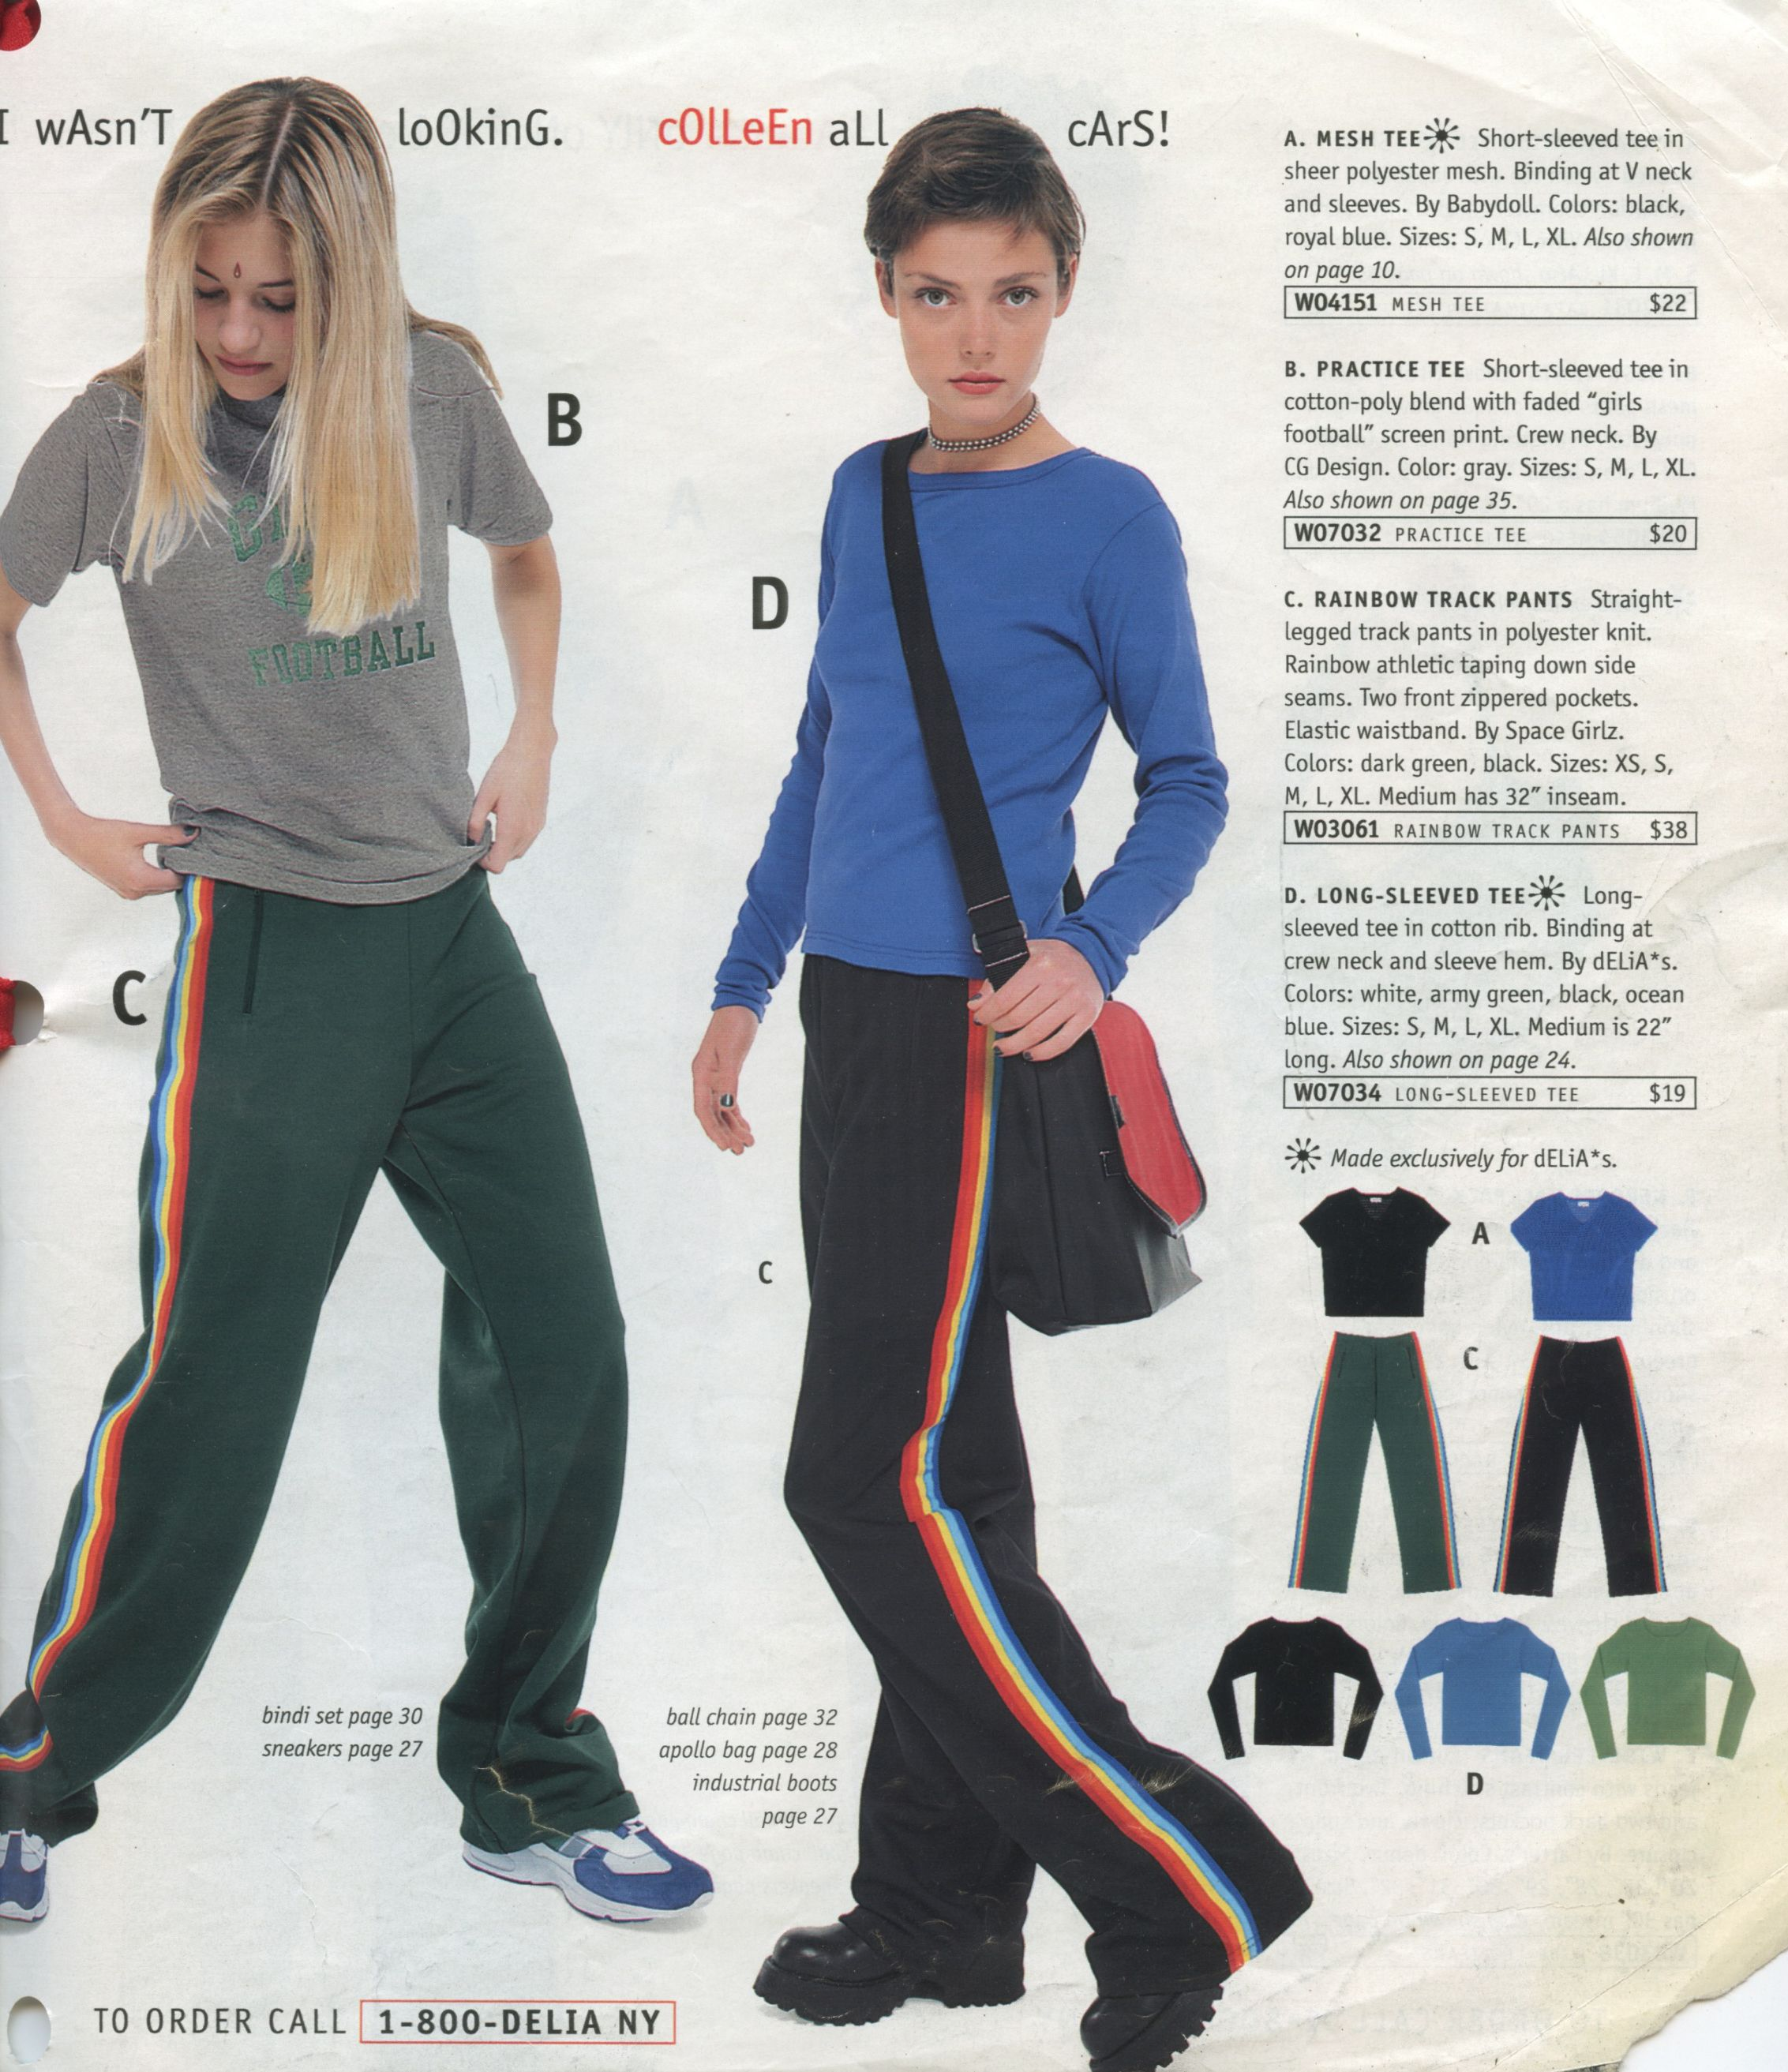 Color Trends What S New What S Next: 90s DELiA*s Obsession